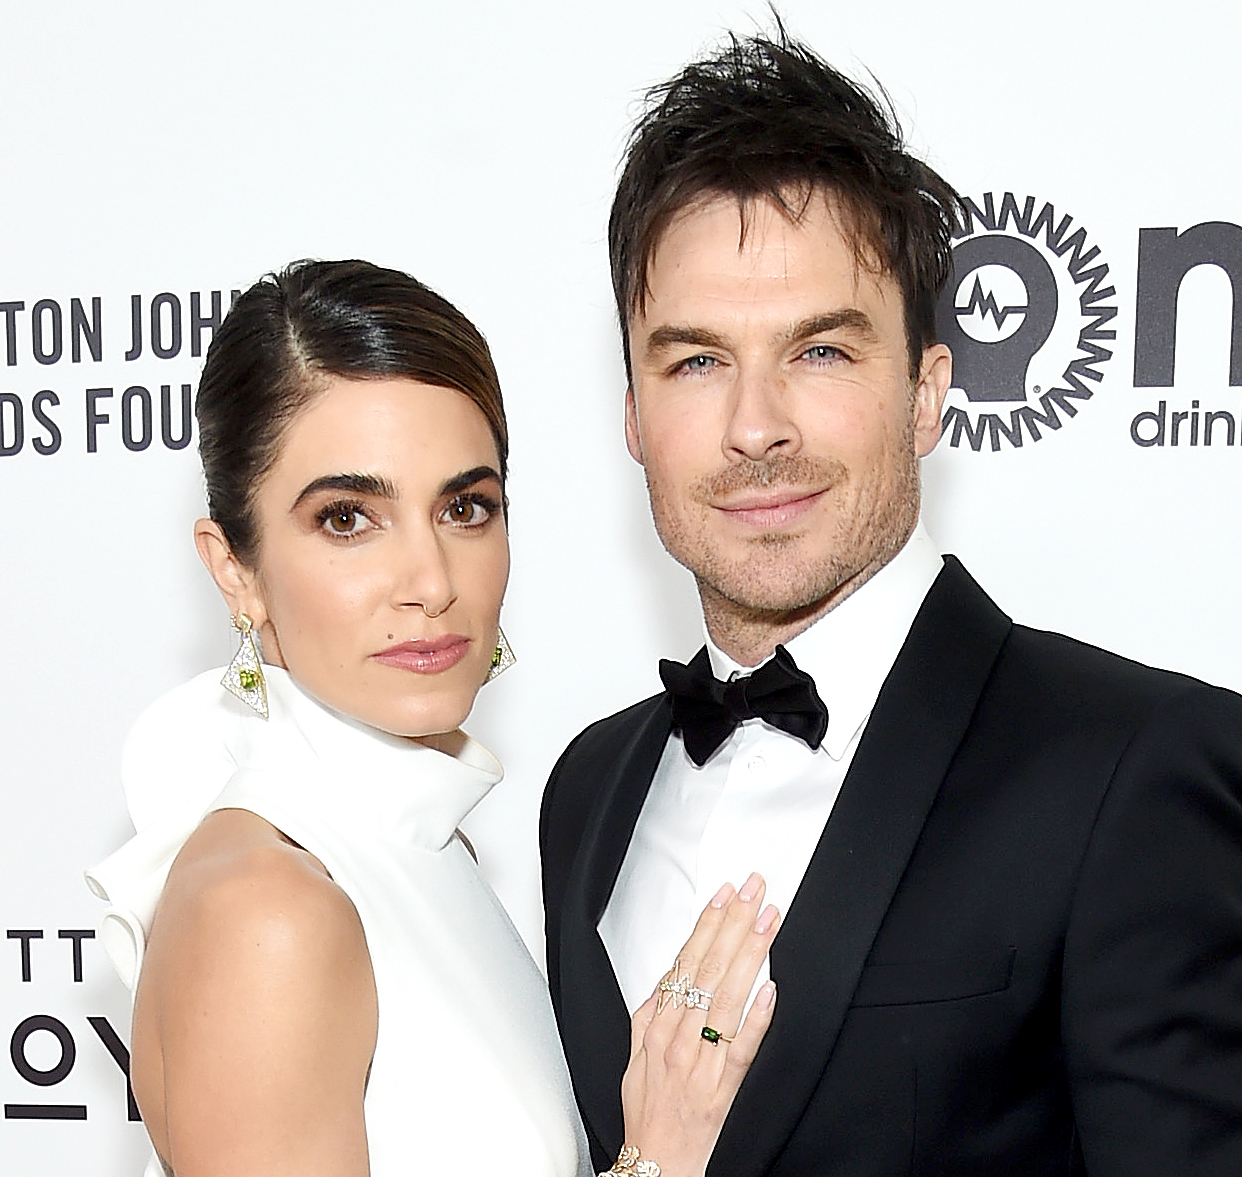 ian-somerhalder-post-haircut-nikki-reed - Nikki Reed and Ian Somerhalder attend the 27th annual Elton John AIDS Foundation Academy Awards Viewing Party sponsored by IMDb and Neuro Drinks celebrating EJAF and the 91st Academy Awards on February 24, 2019 in West Hollywood, California.